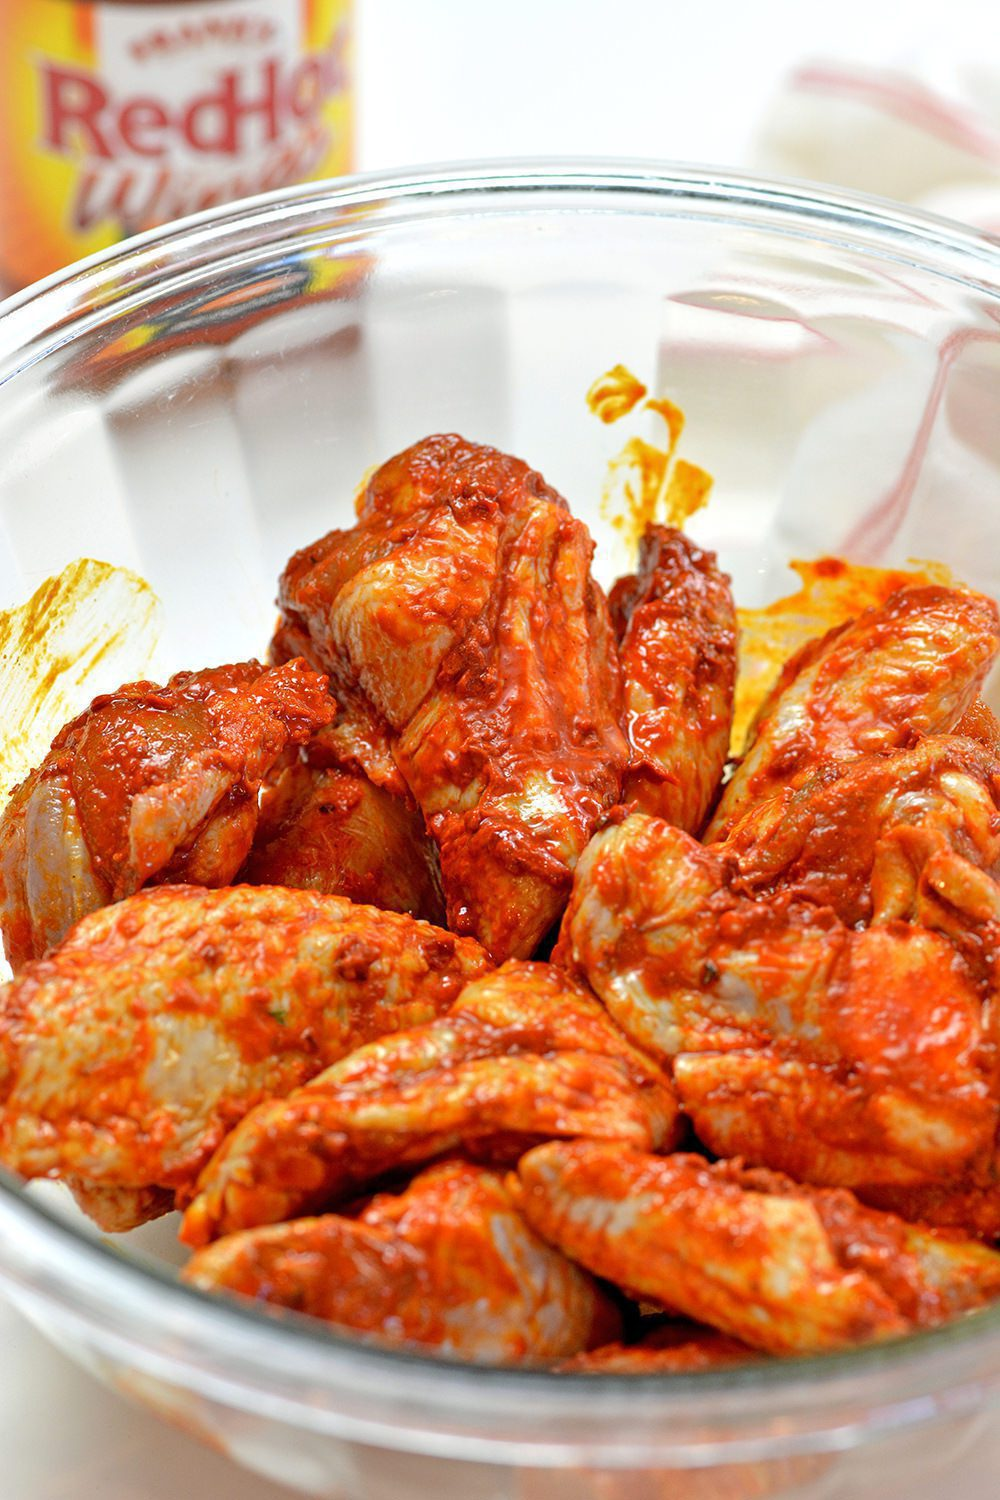 Raw chicken wings covered with buffalo sauce